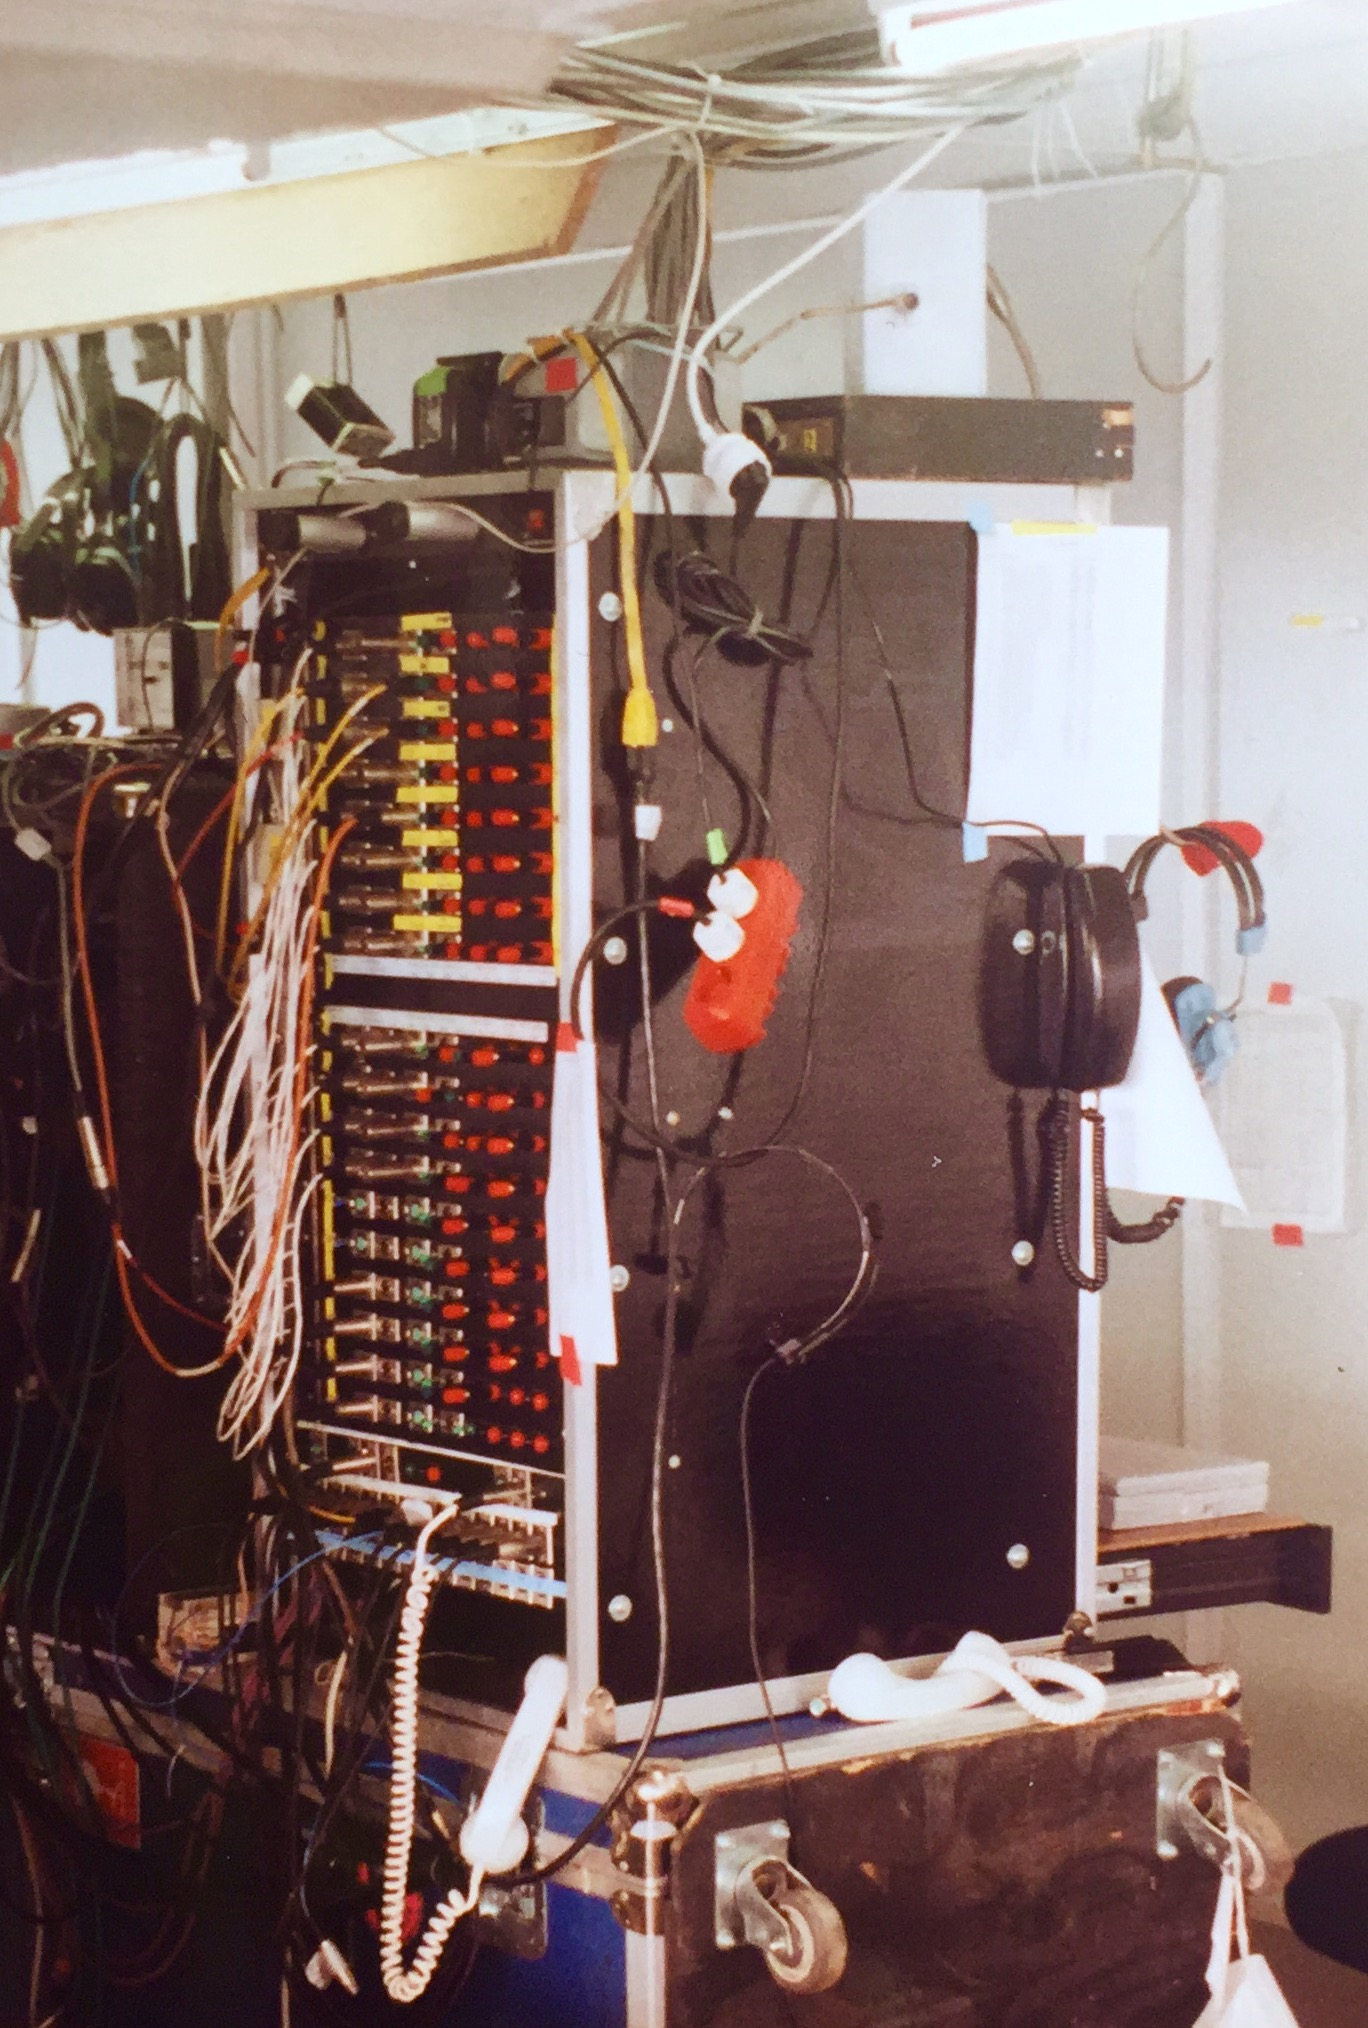 This is the rear of the Matrix system.  Each 4-wire port had a selection of connectors to nterface as well as the relay outputs for every CCI-22